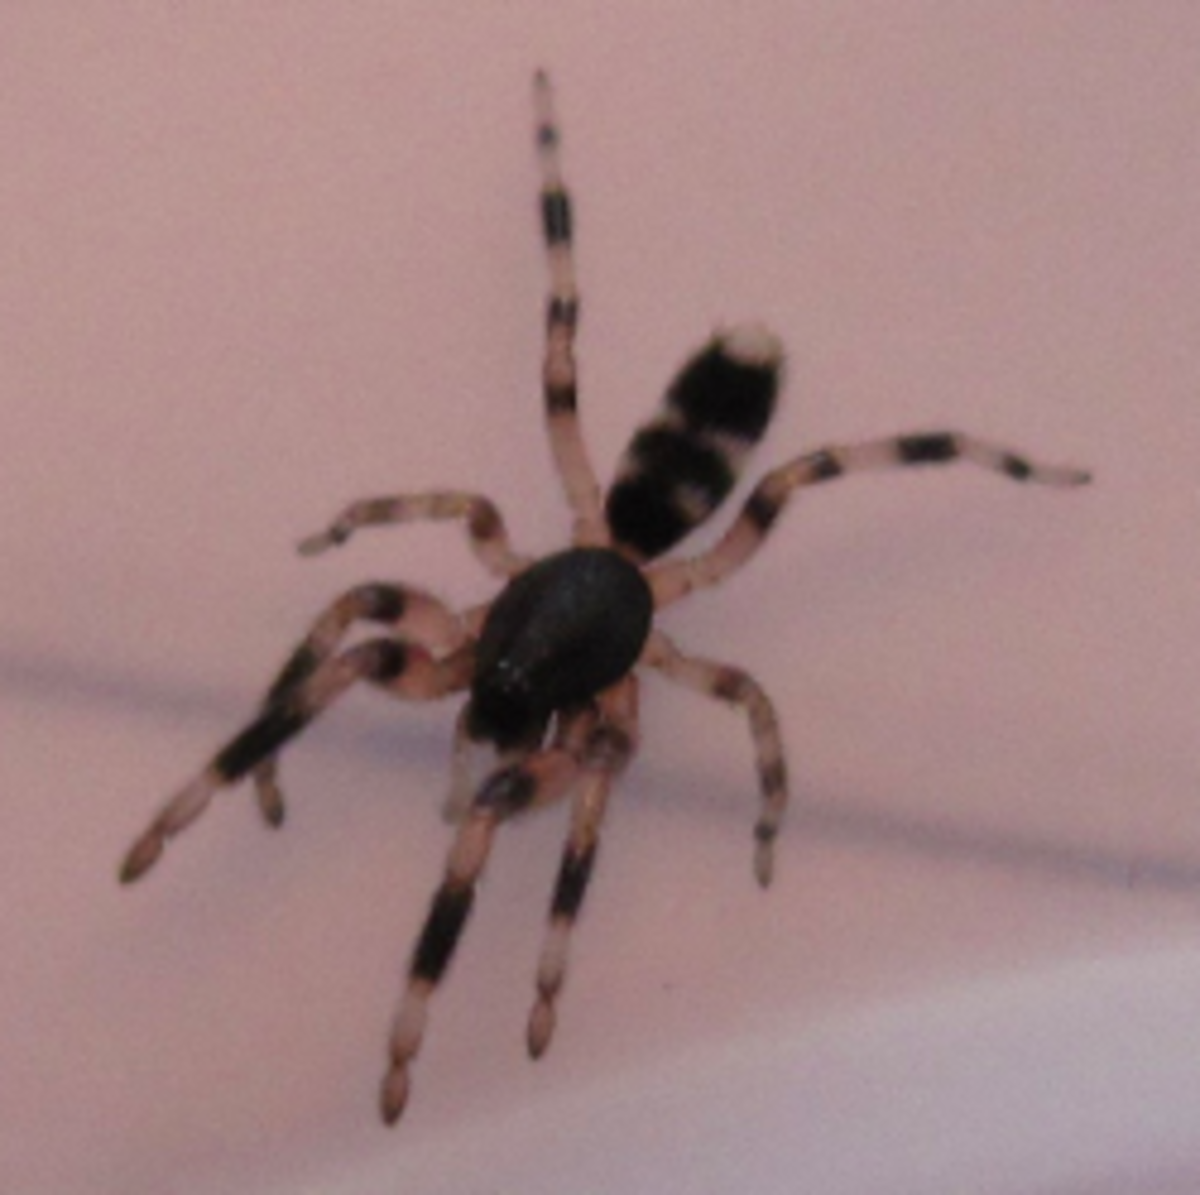 White Tail Spider - Dangerous or Overrated?